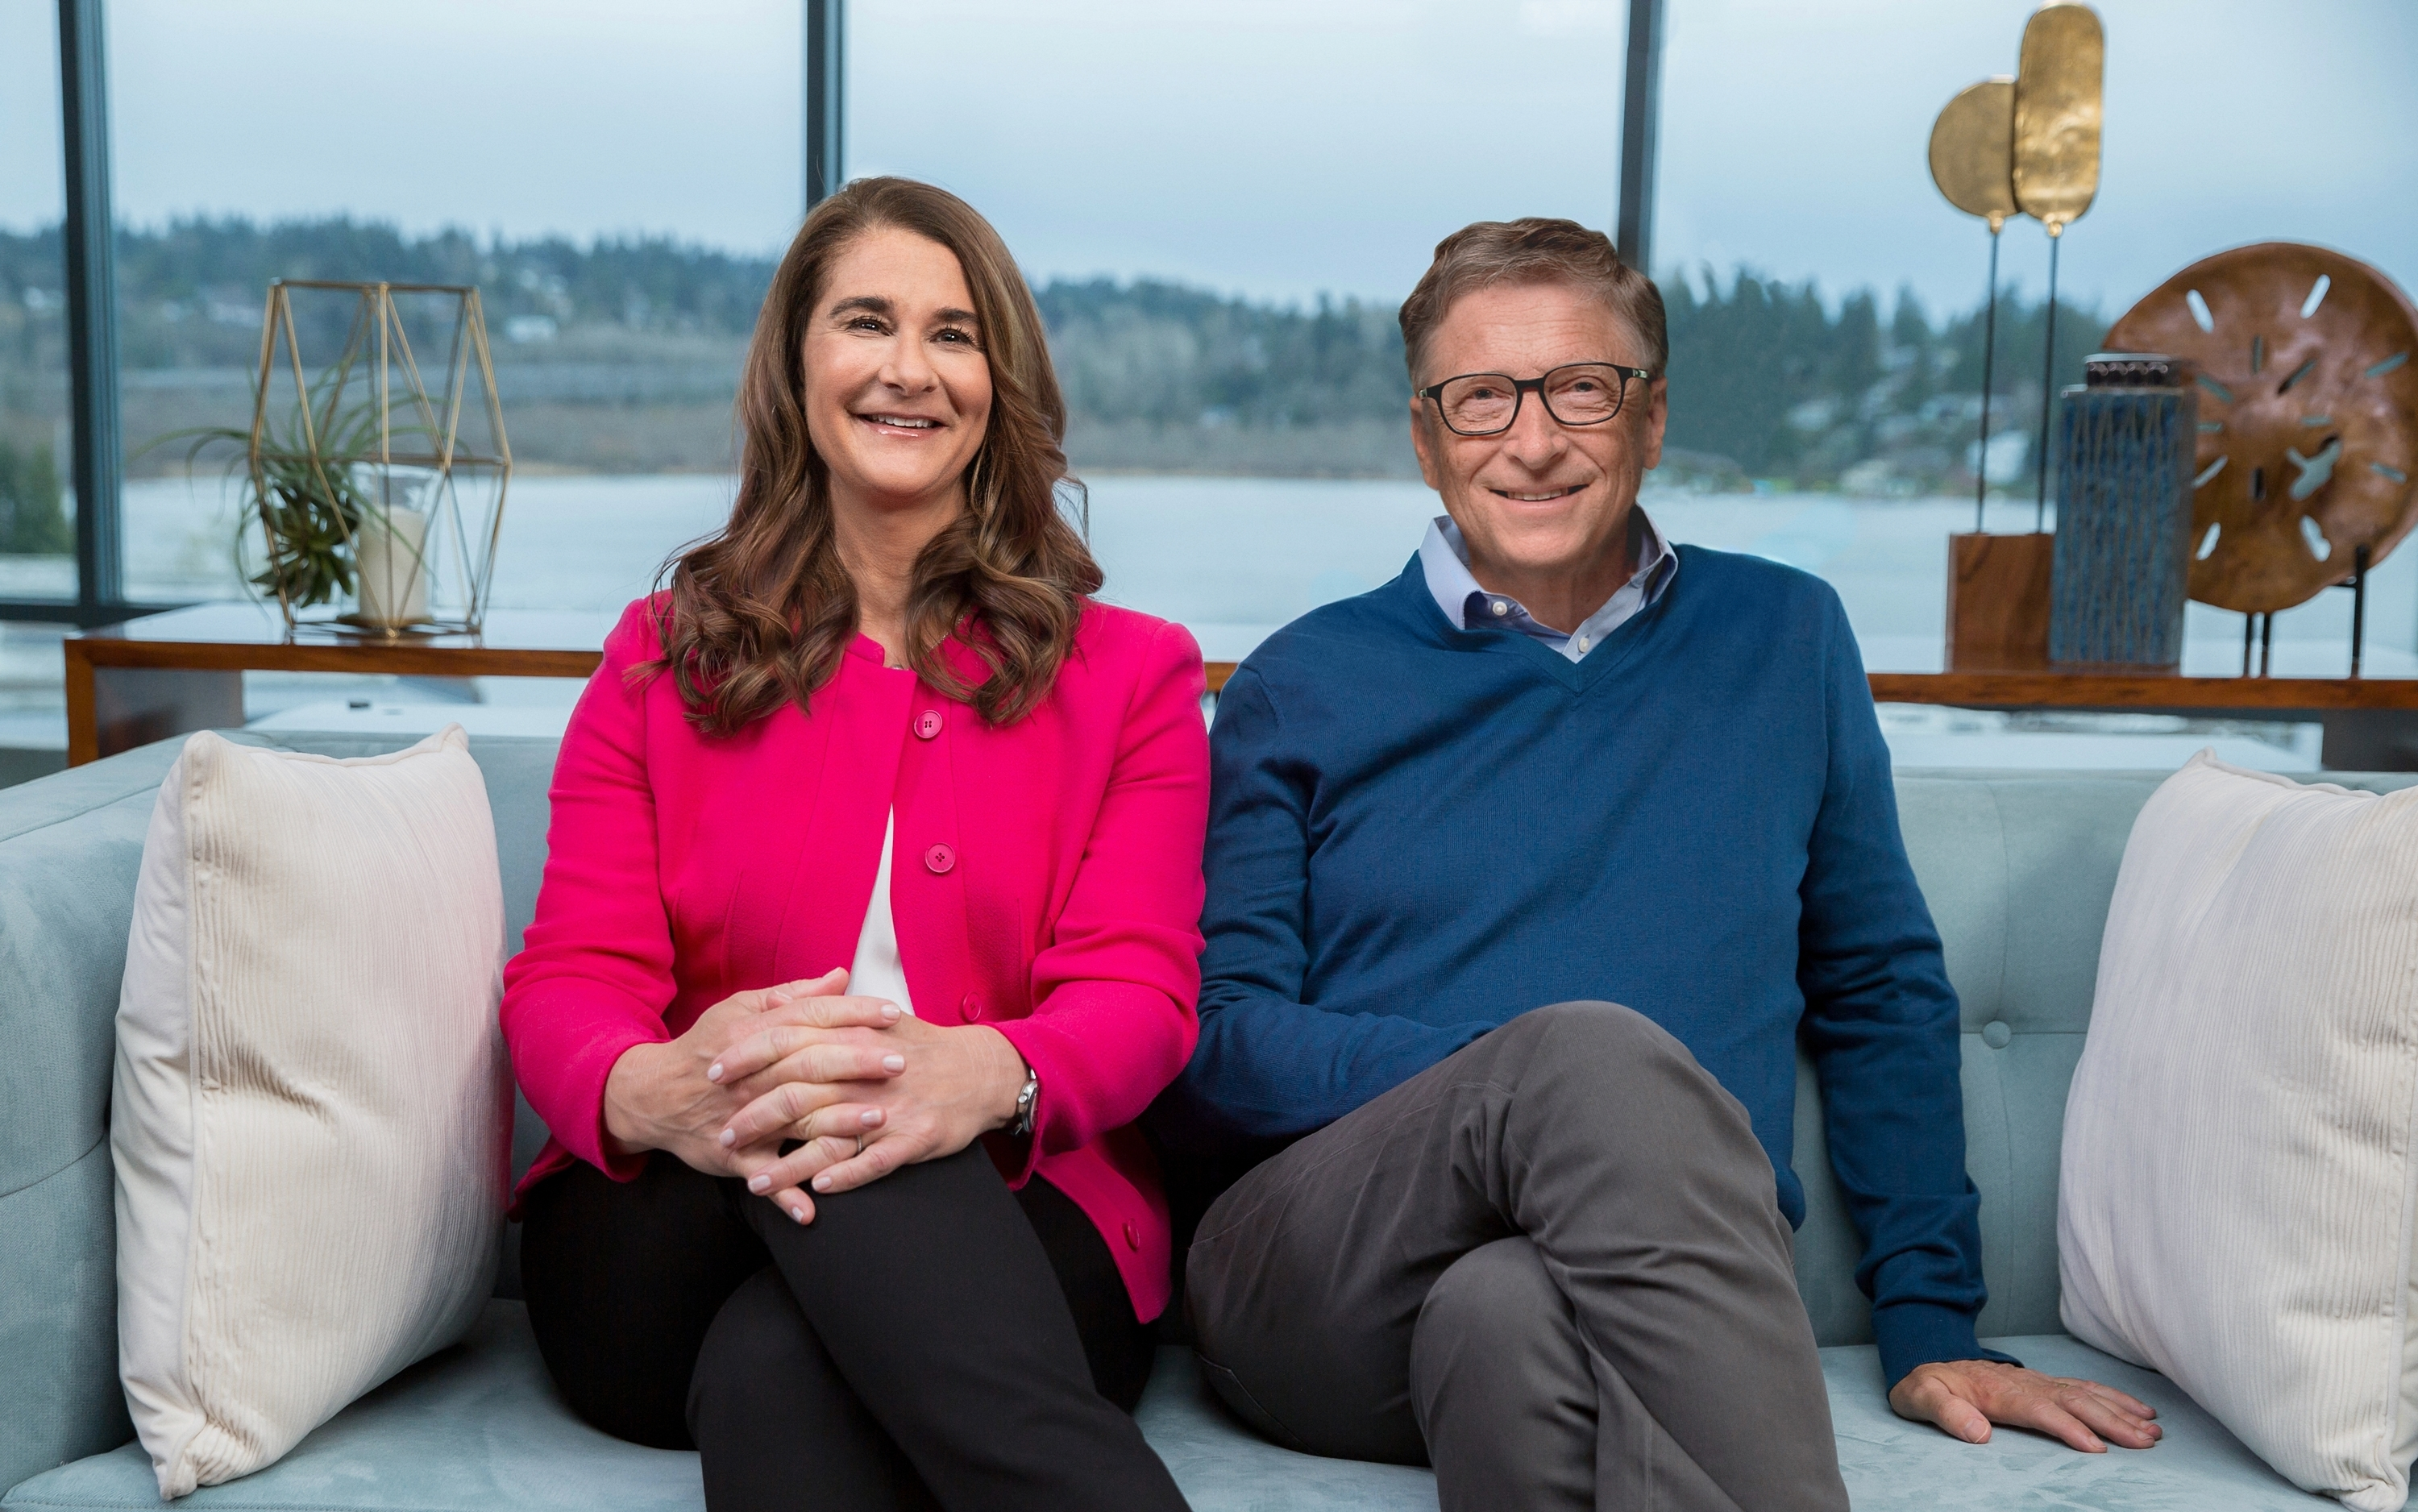 Bill and Melinda Gates' foundation is developing vaccines for Malaria, HIV and TB. Credit: PA